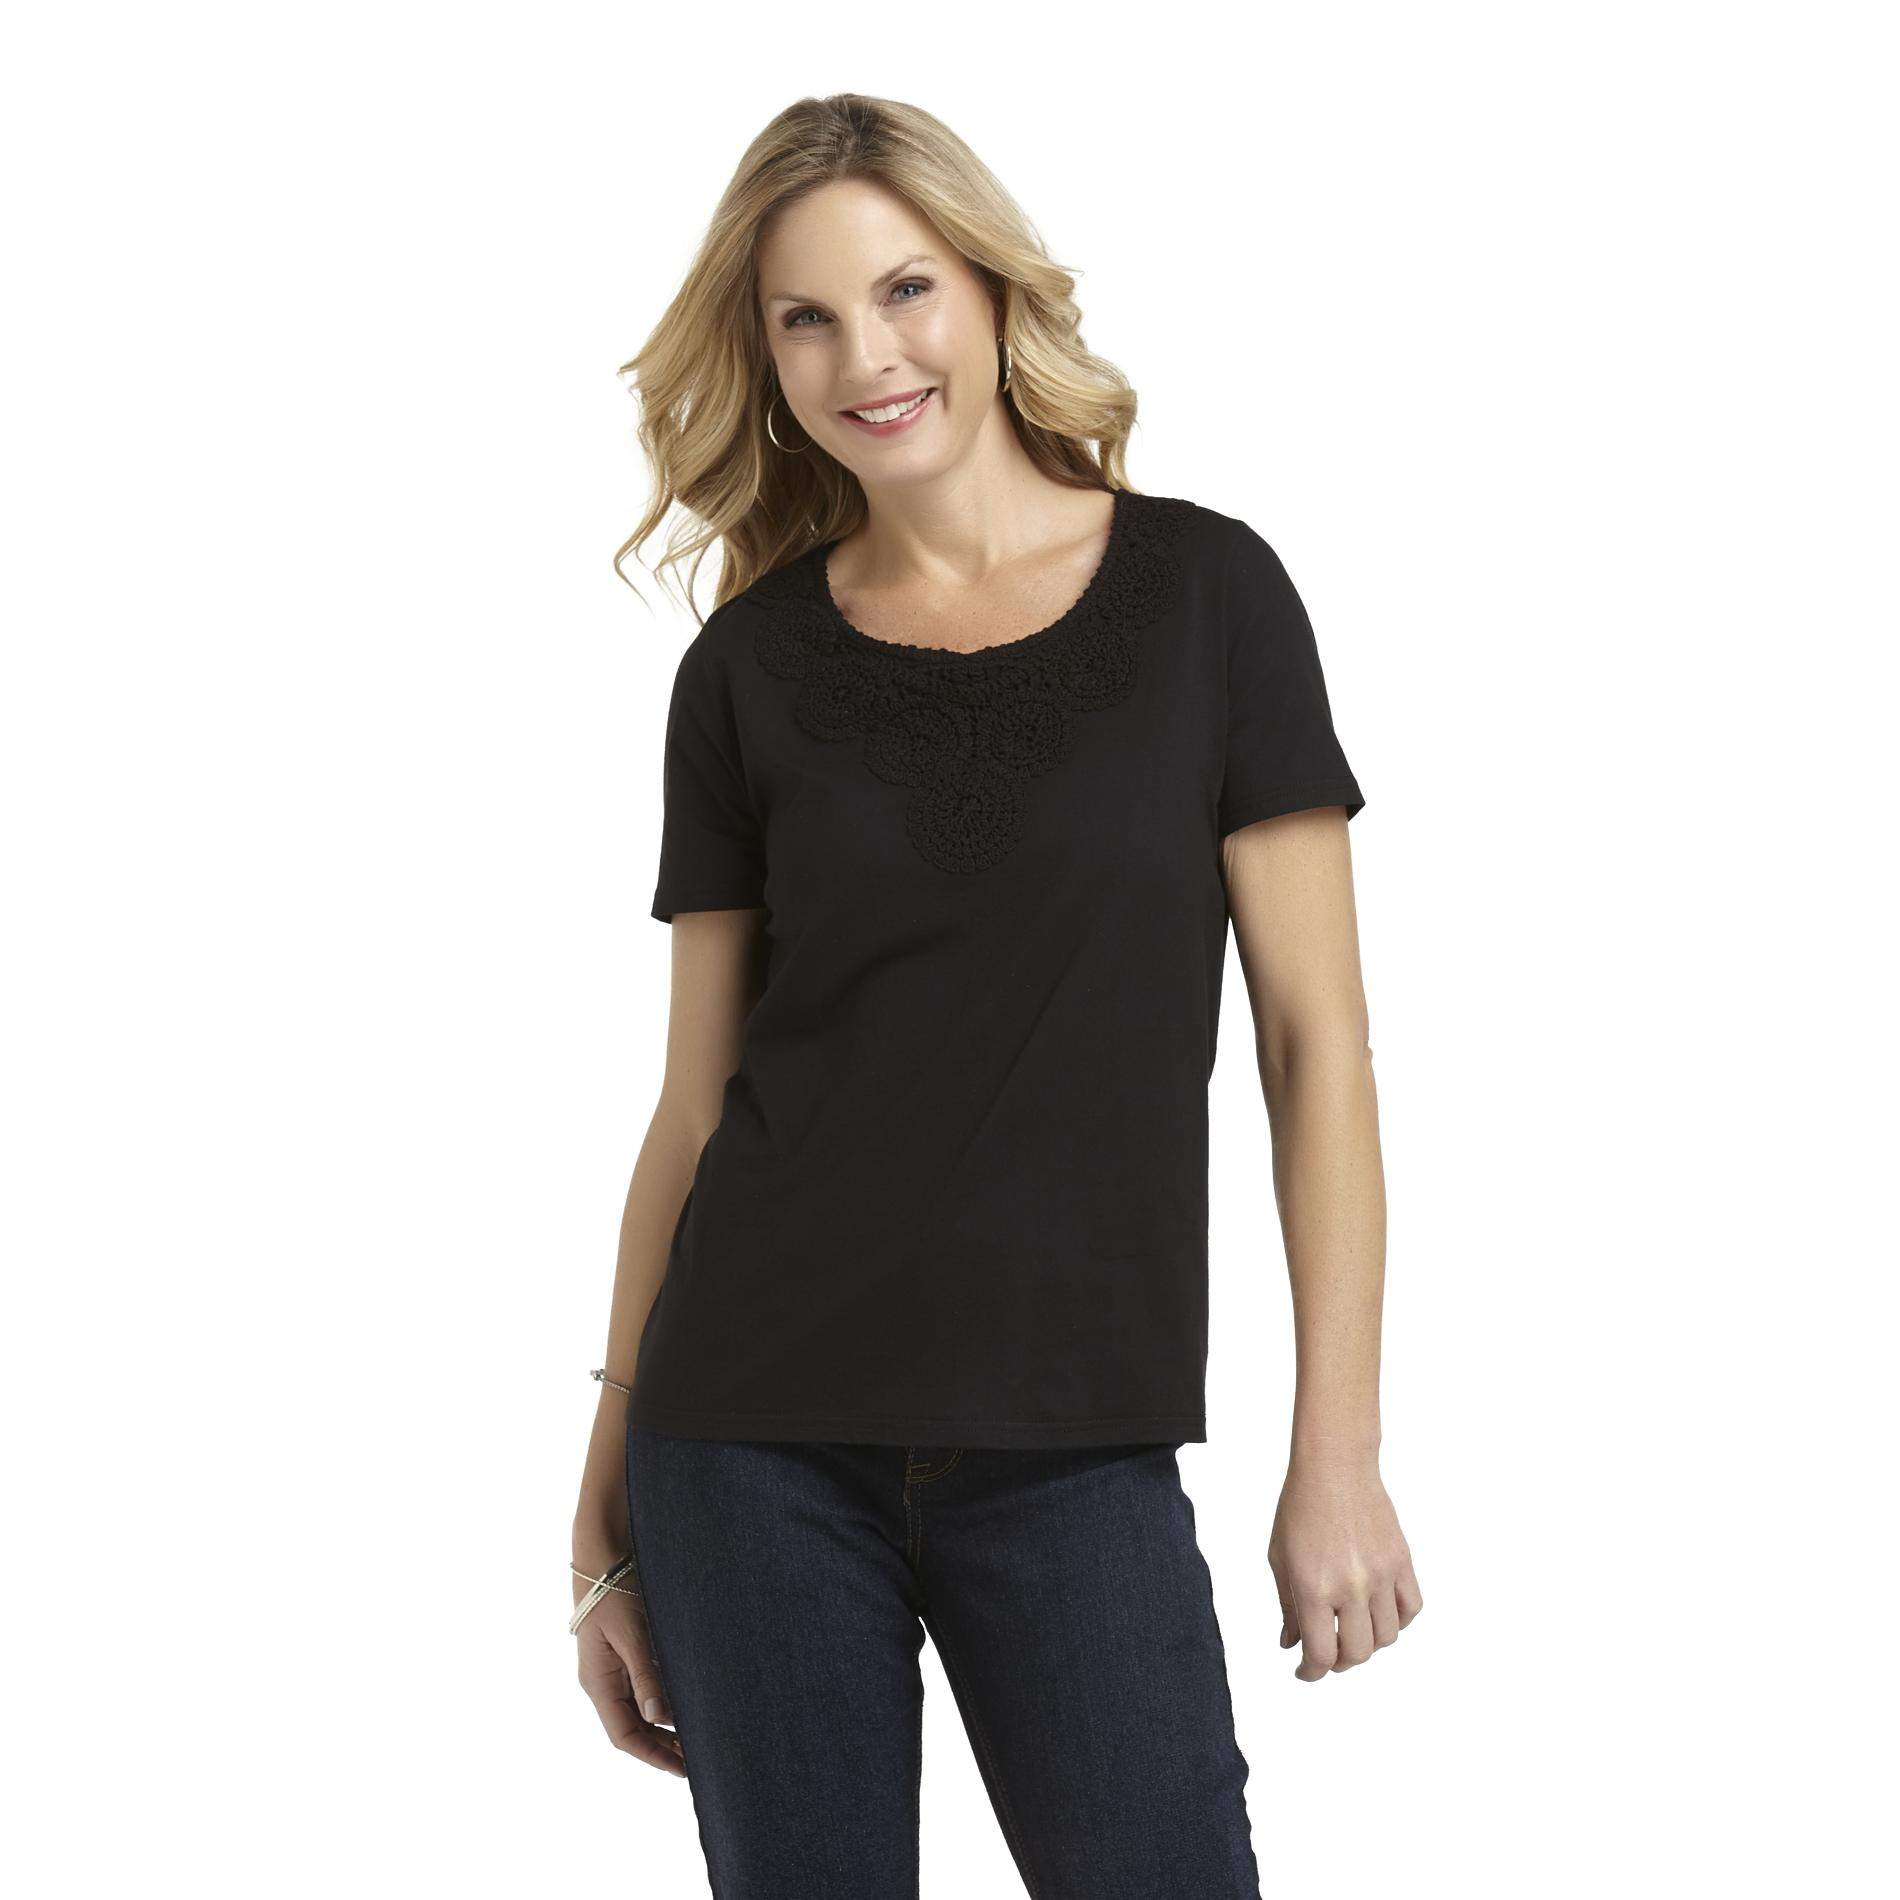 Basic Editions Women's Embroidered T-Shirt at Kmart.com